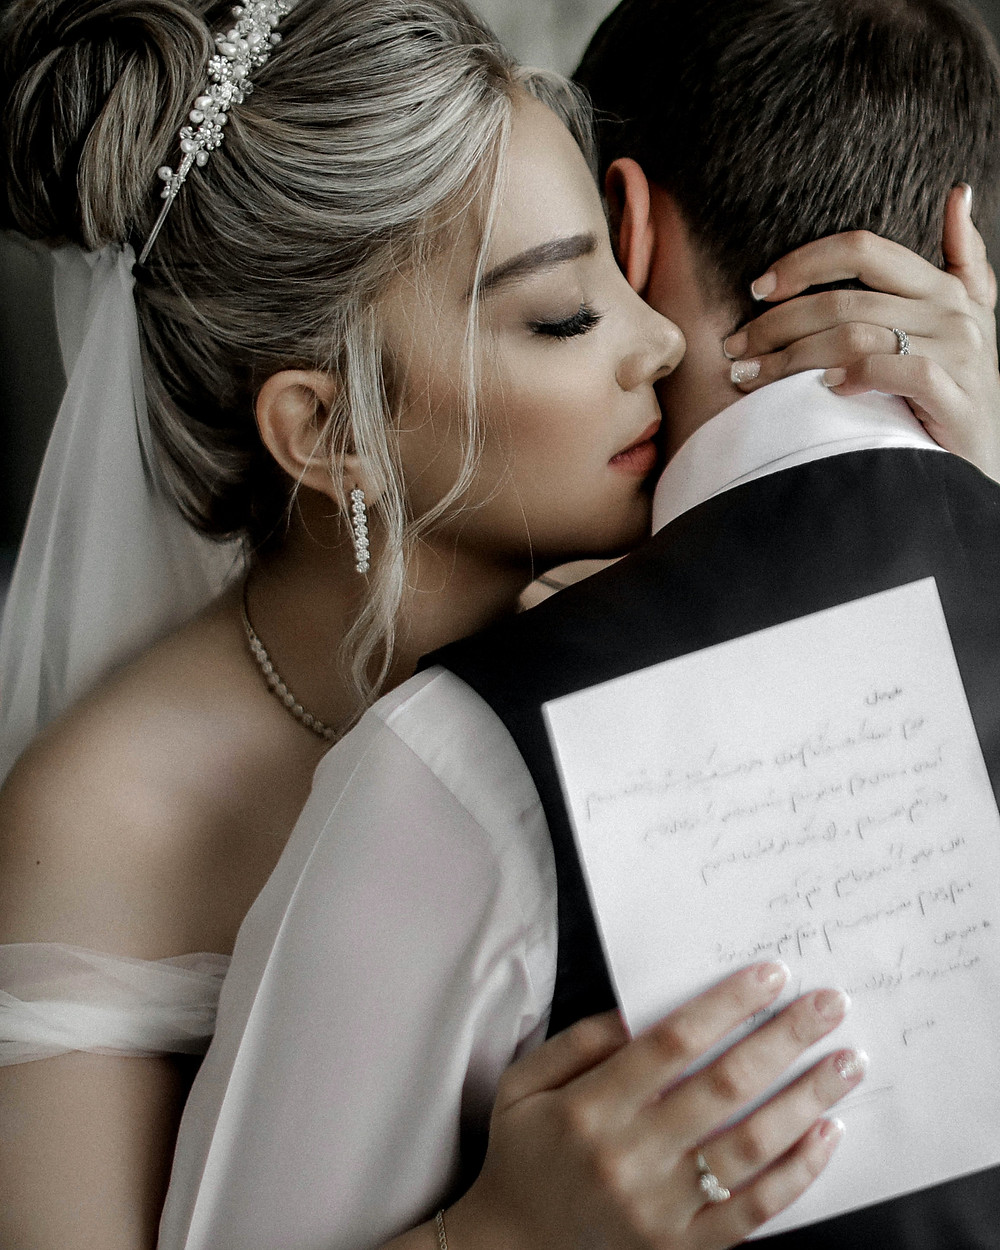 A white couple hugging. She is blonde and has a veil in her hair, and is wearing a wedding dress. She is holding a paper with vows written on it. He has his back to the camera, and is wearing a white collared shirt and a black vest.